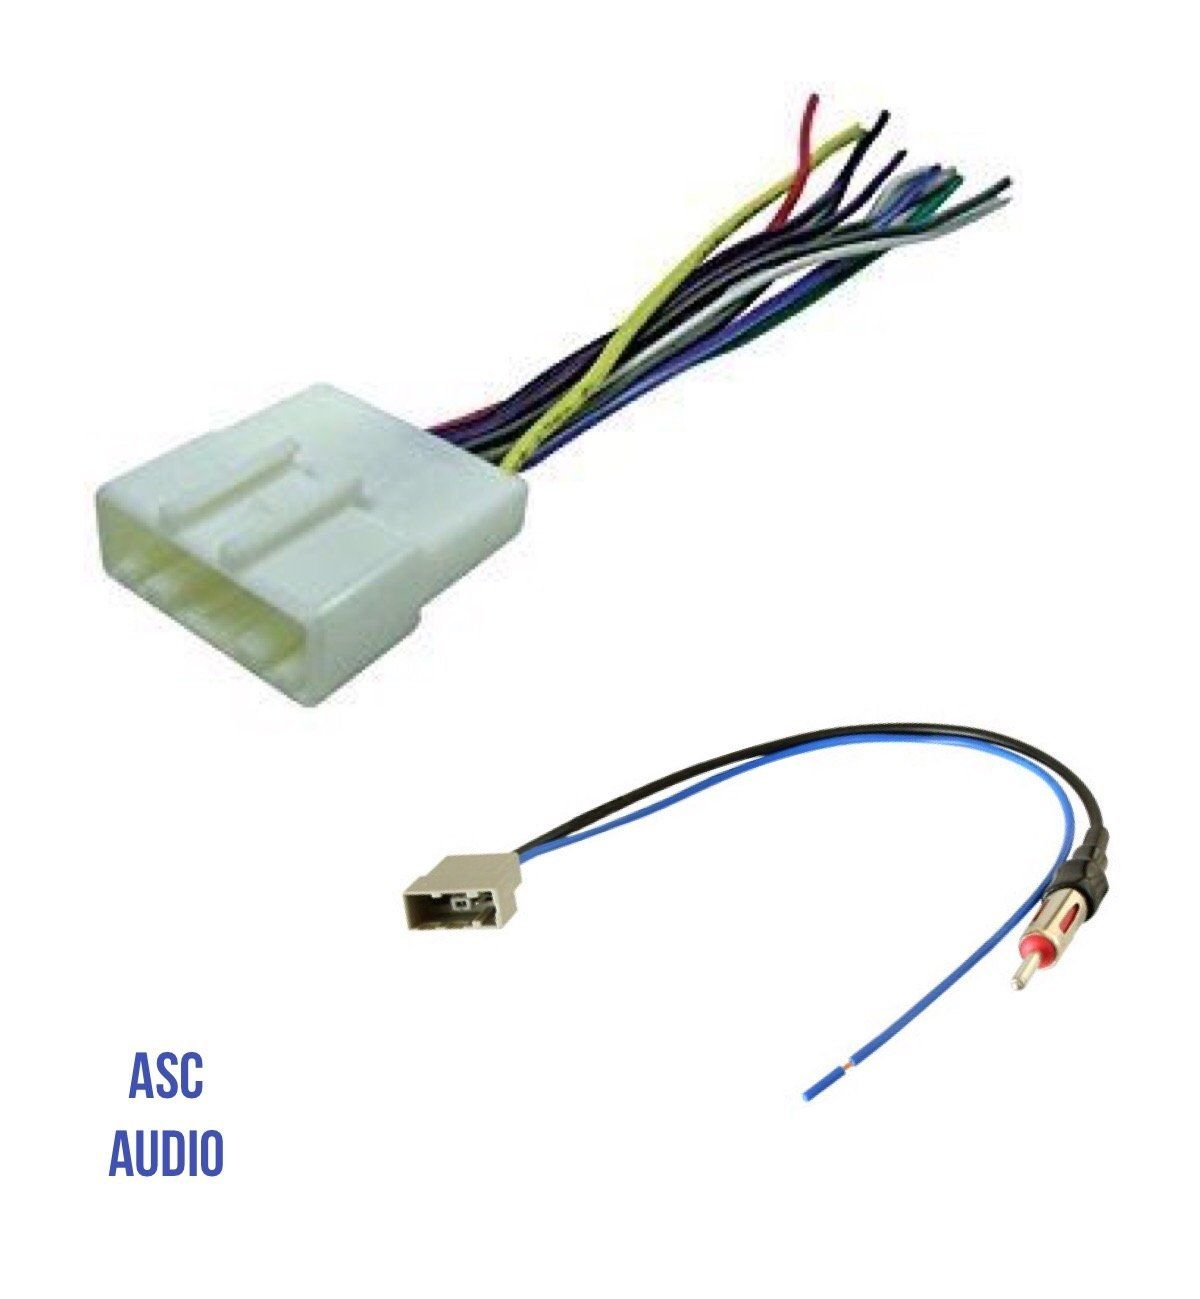 ded3e23b12a57e169c7f92c5a8d177d5 asc audio car stereo radio wire harness and antenna adapter to GM Radio Wiring Harness Diagram at crackthecode.co